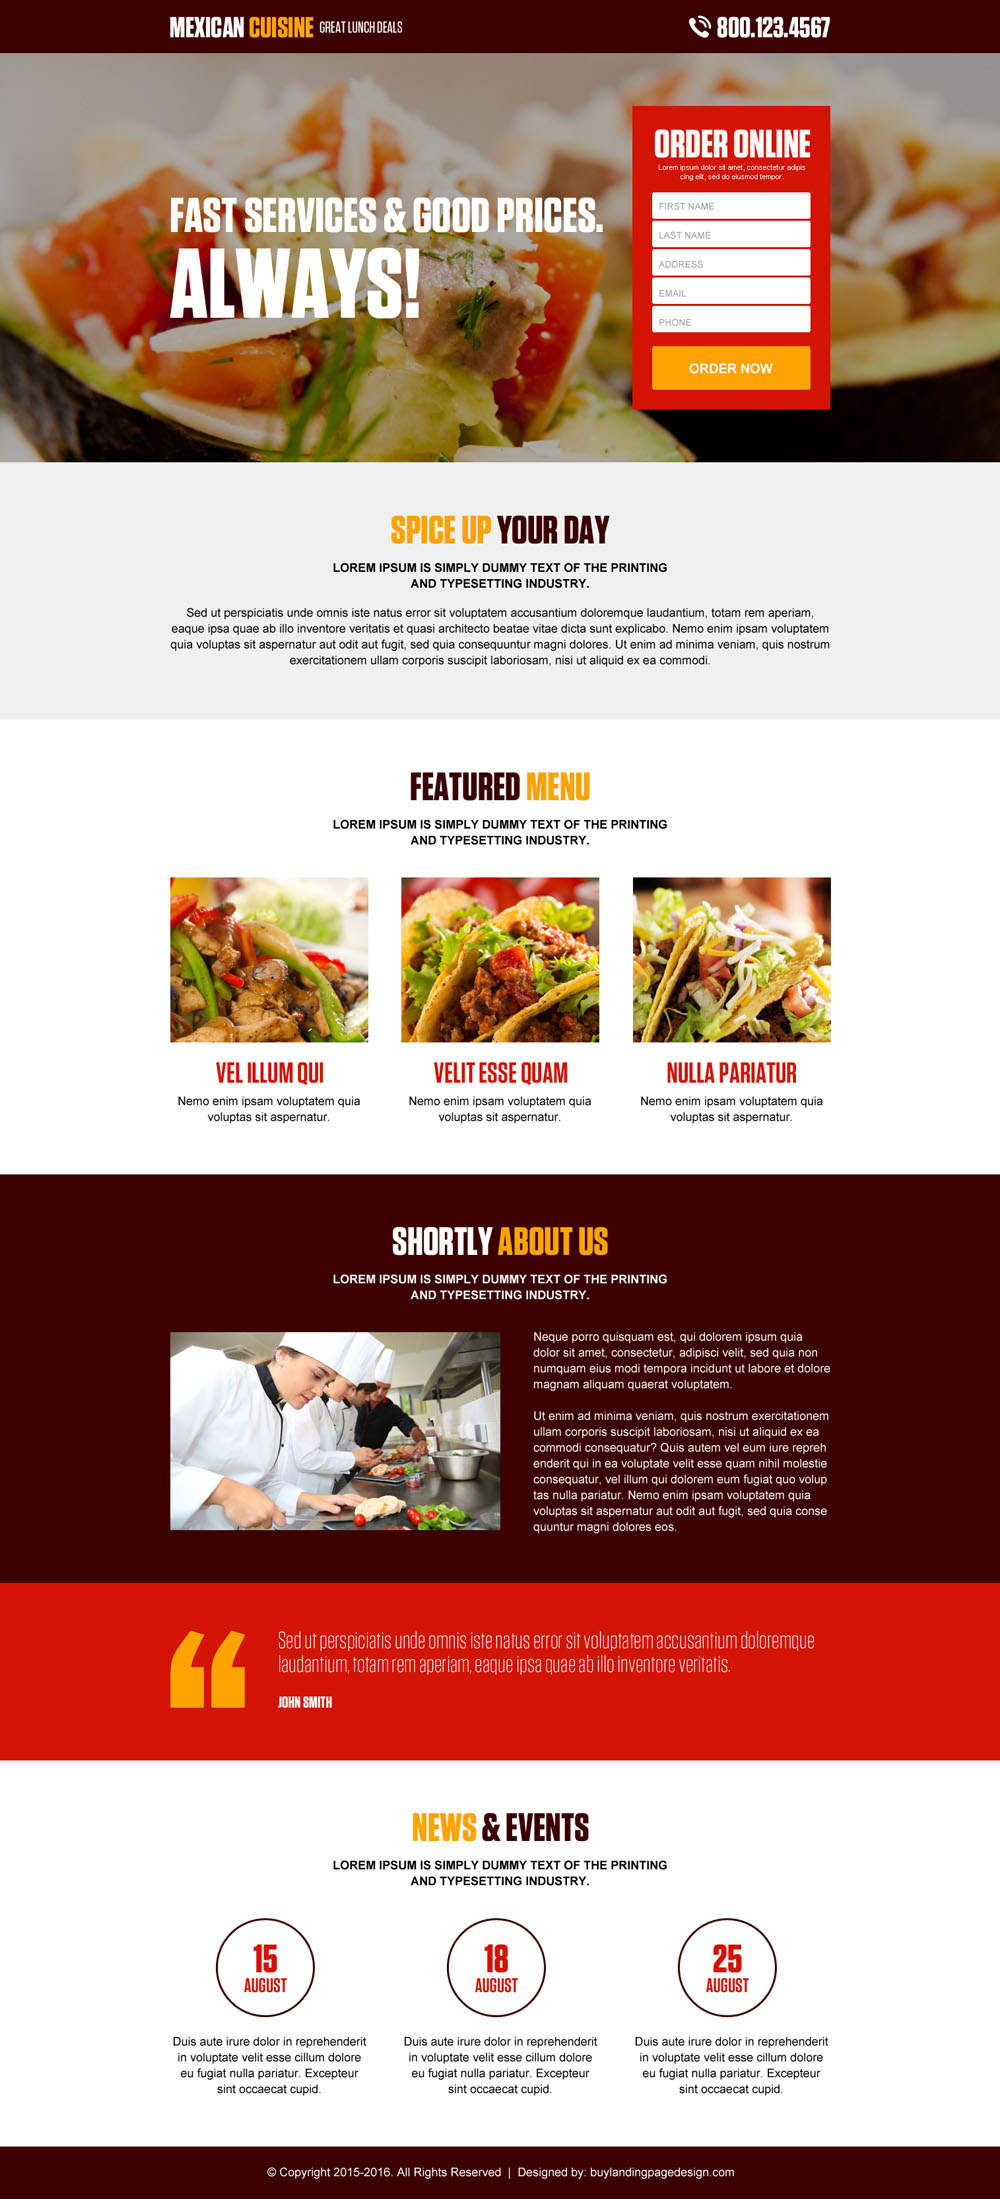 hotel-and-restaurant-lead-generation-converting-mobile-responsive-landing-page-design-002